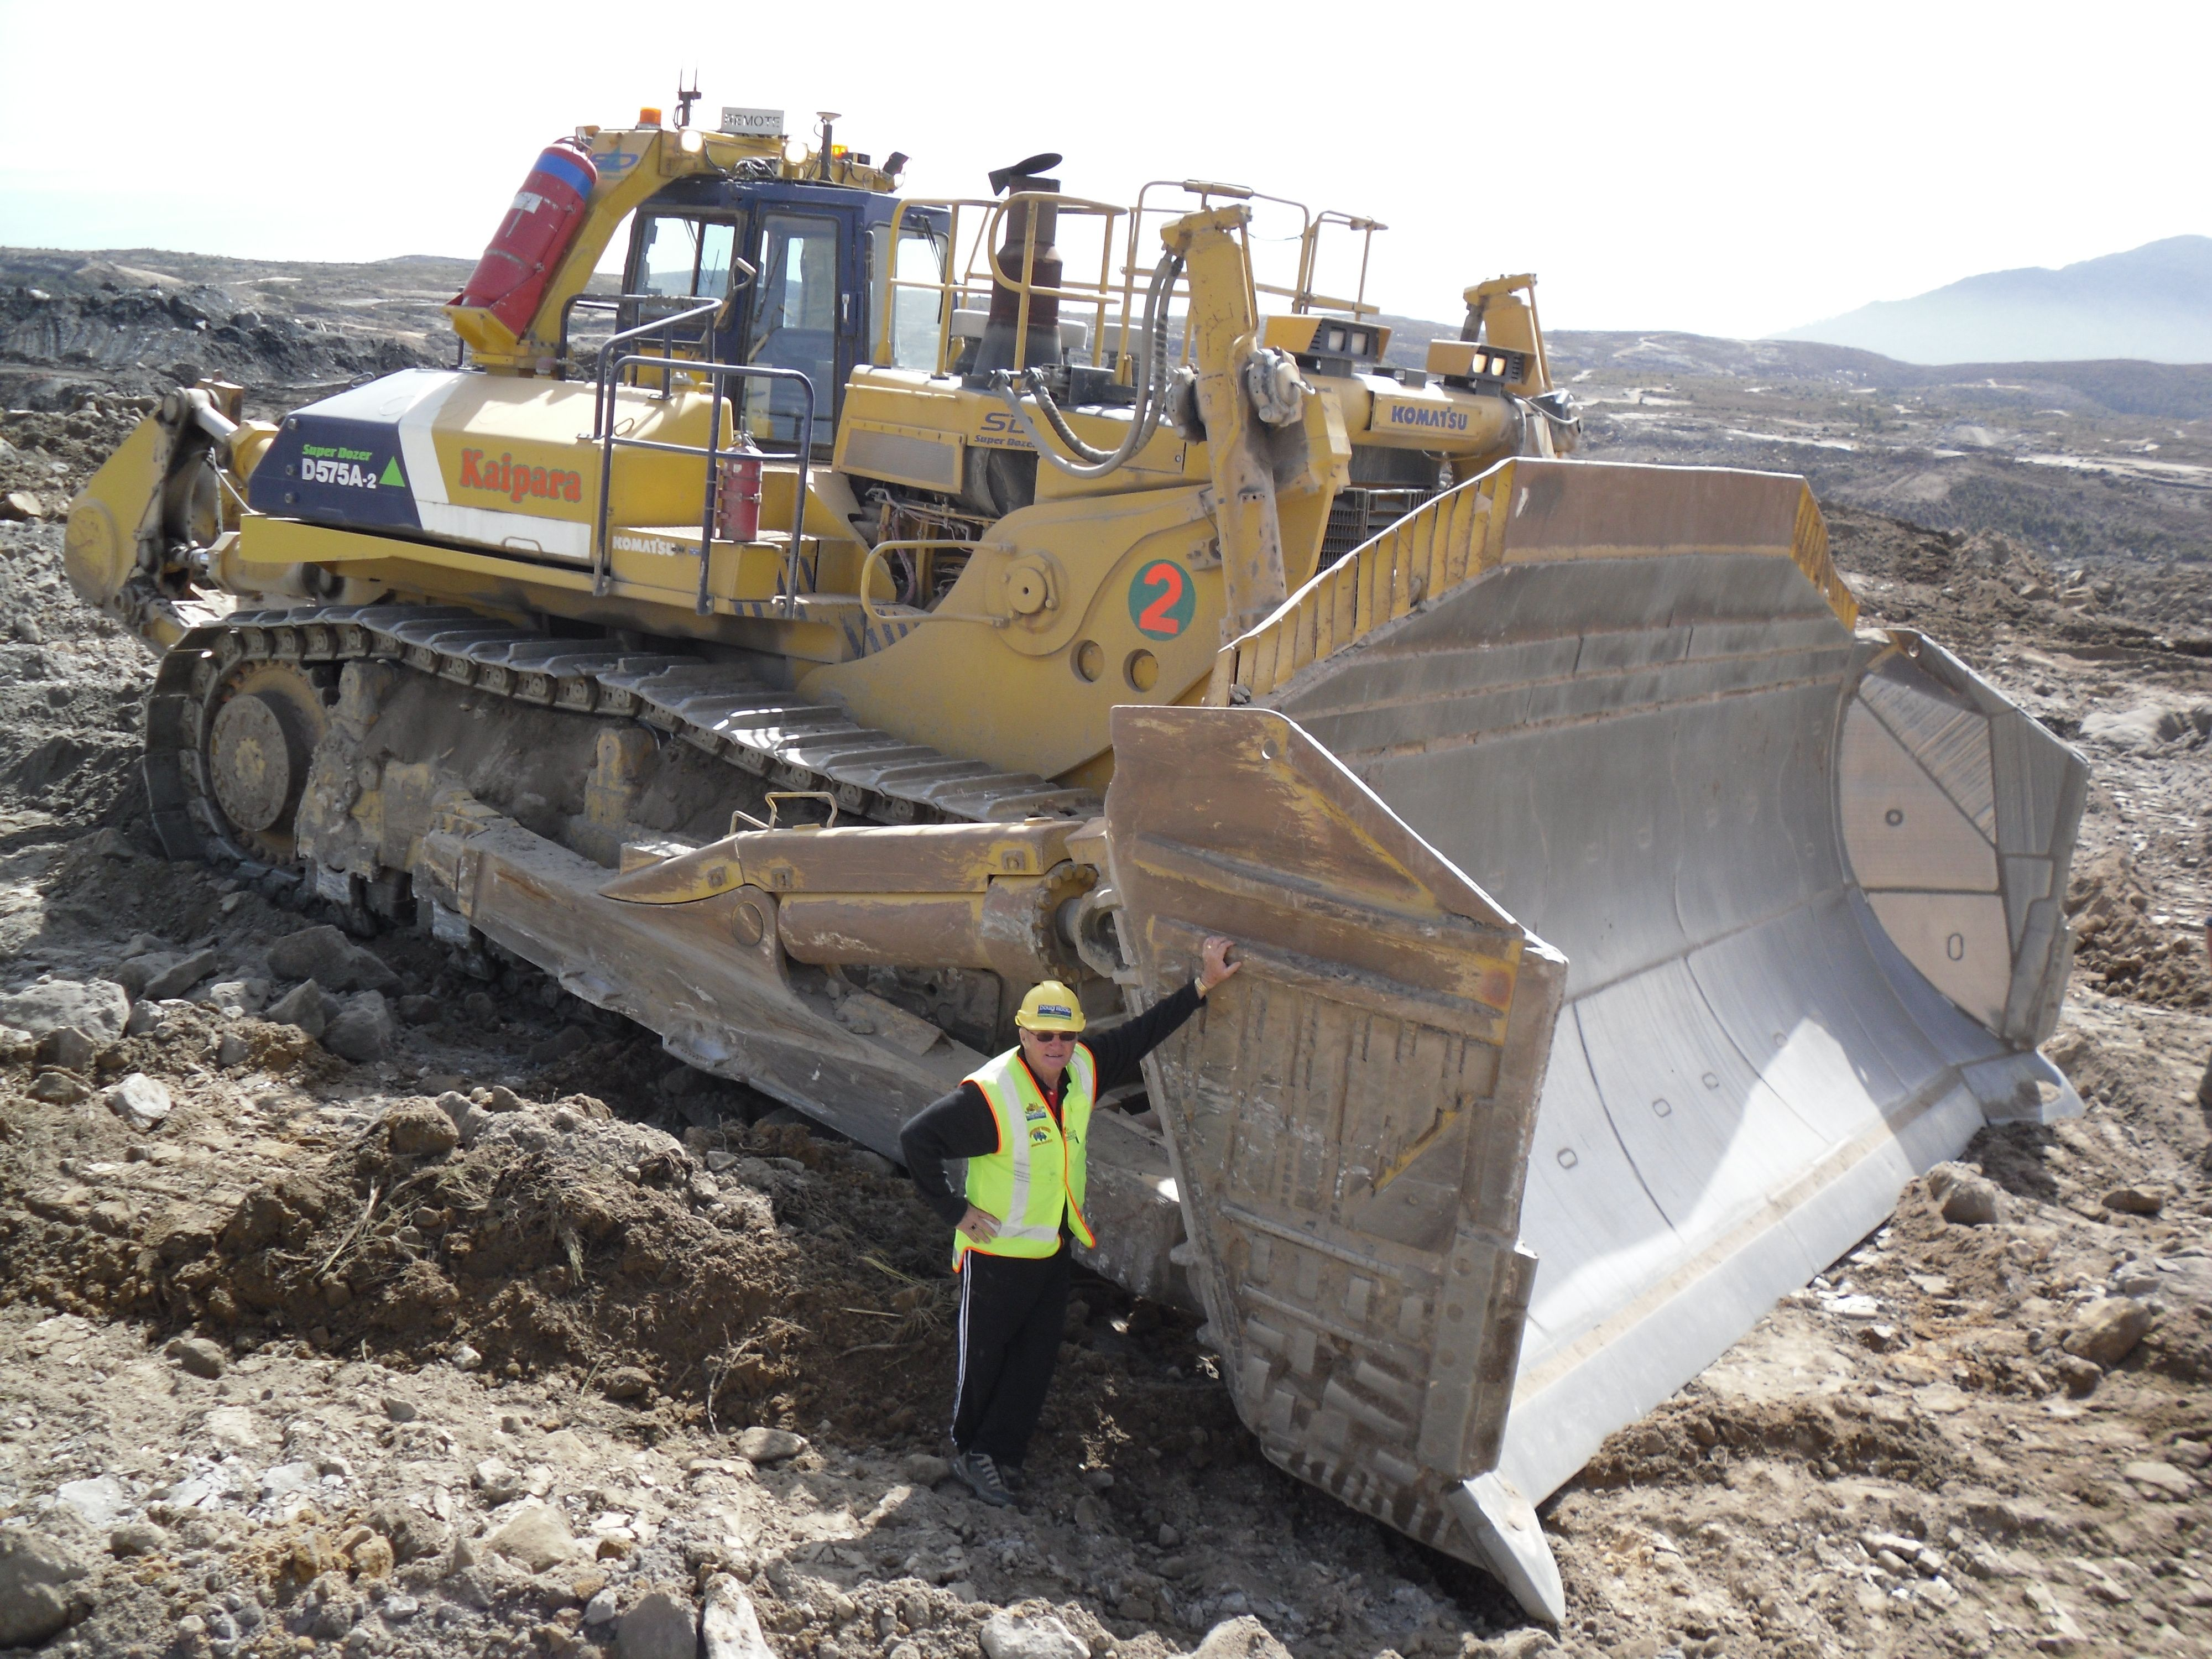 1000 images about big buckets trucks and big trucks equipment plant equipment jobsites moving equipment heavy equipment d575a bulldozer largest bulldozer excavator huge machines mining machines